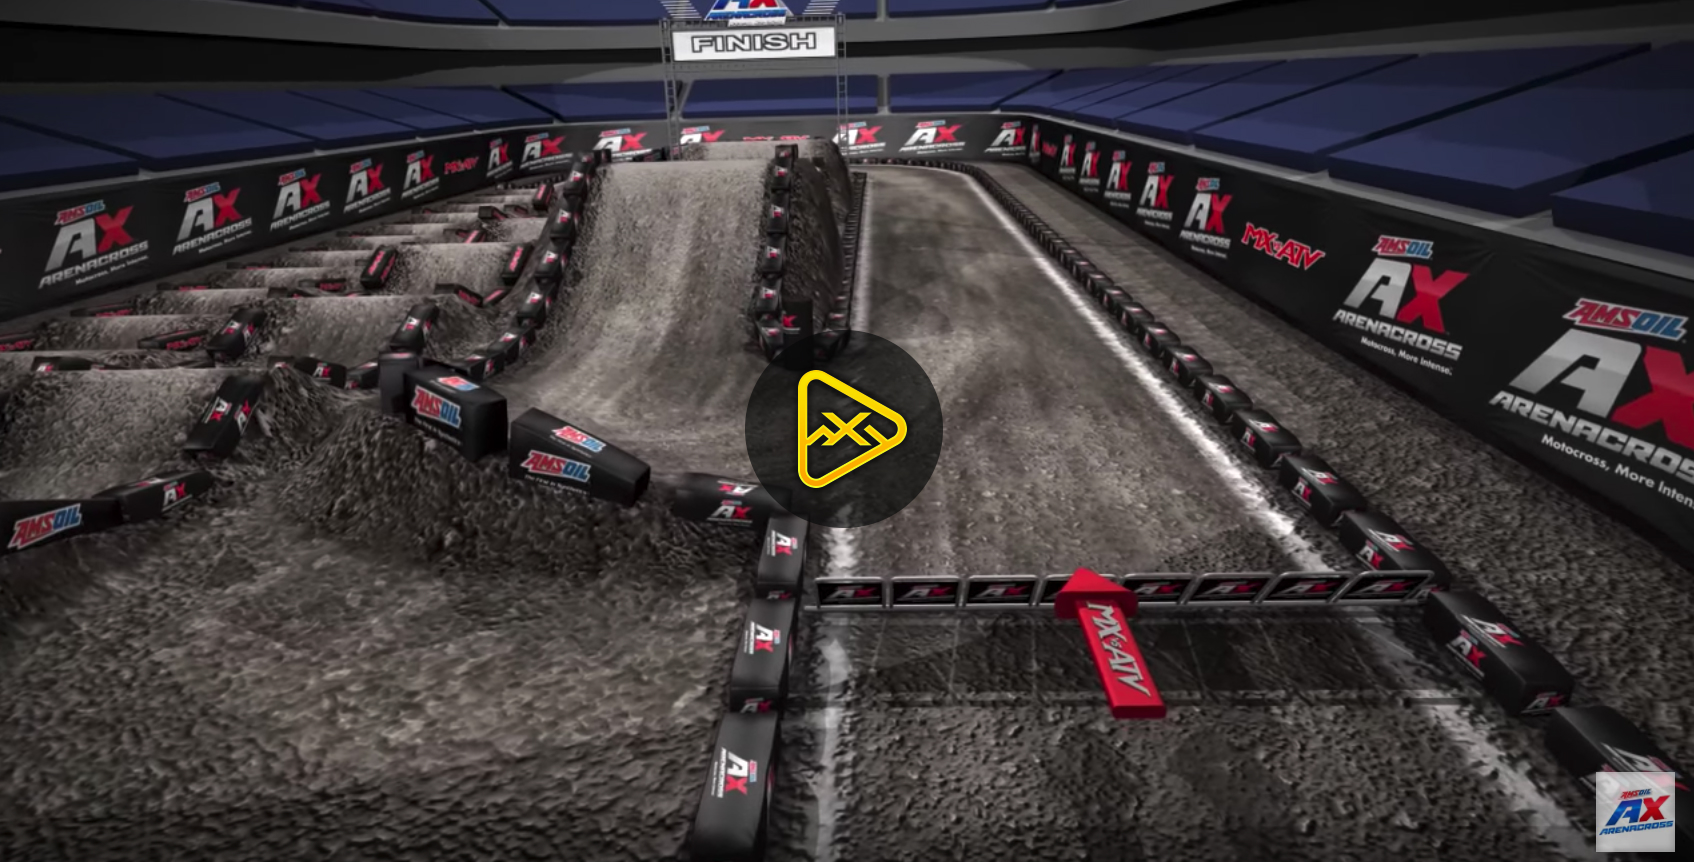 2018 Wilkes-Barre AX Animated Track Map